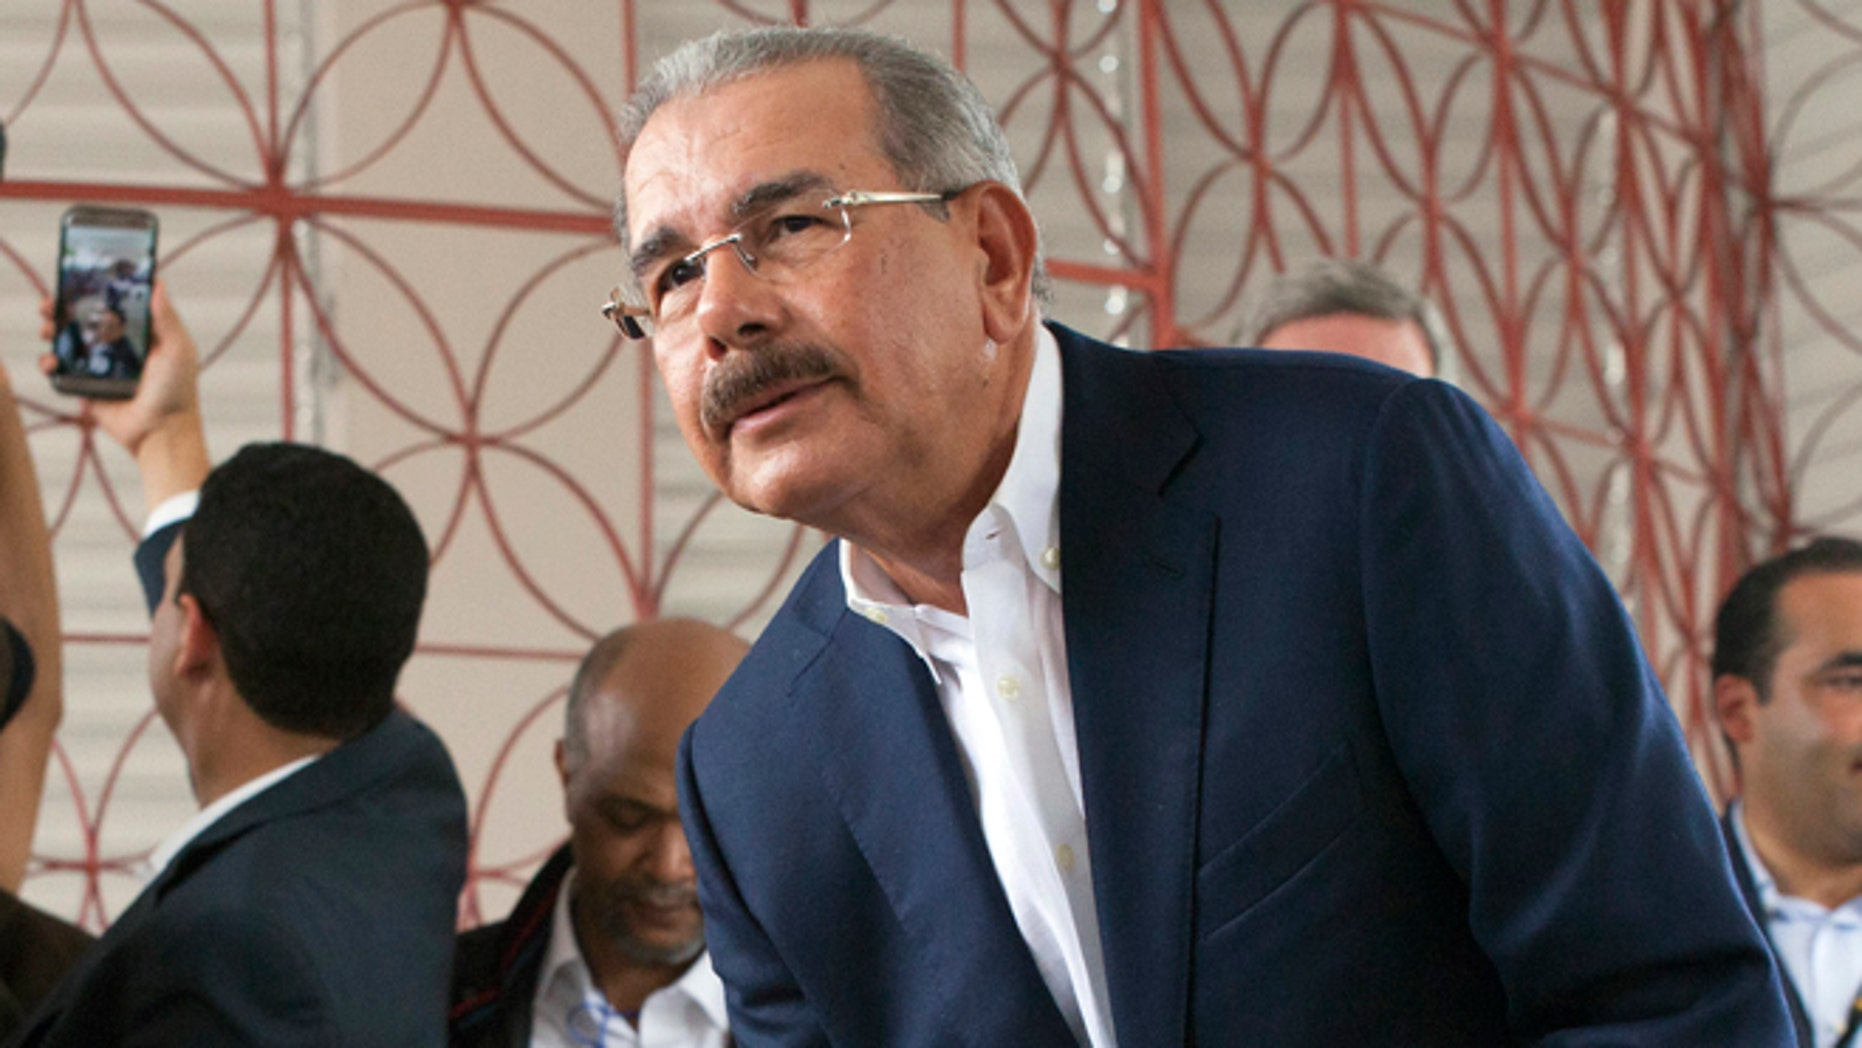 Danilo Medina casts his ballot during the general elections in Santo Domingo, Sunday, May 15, 2016.